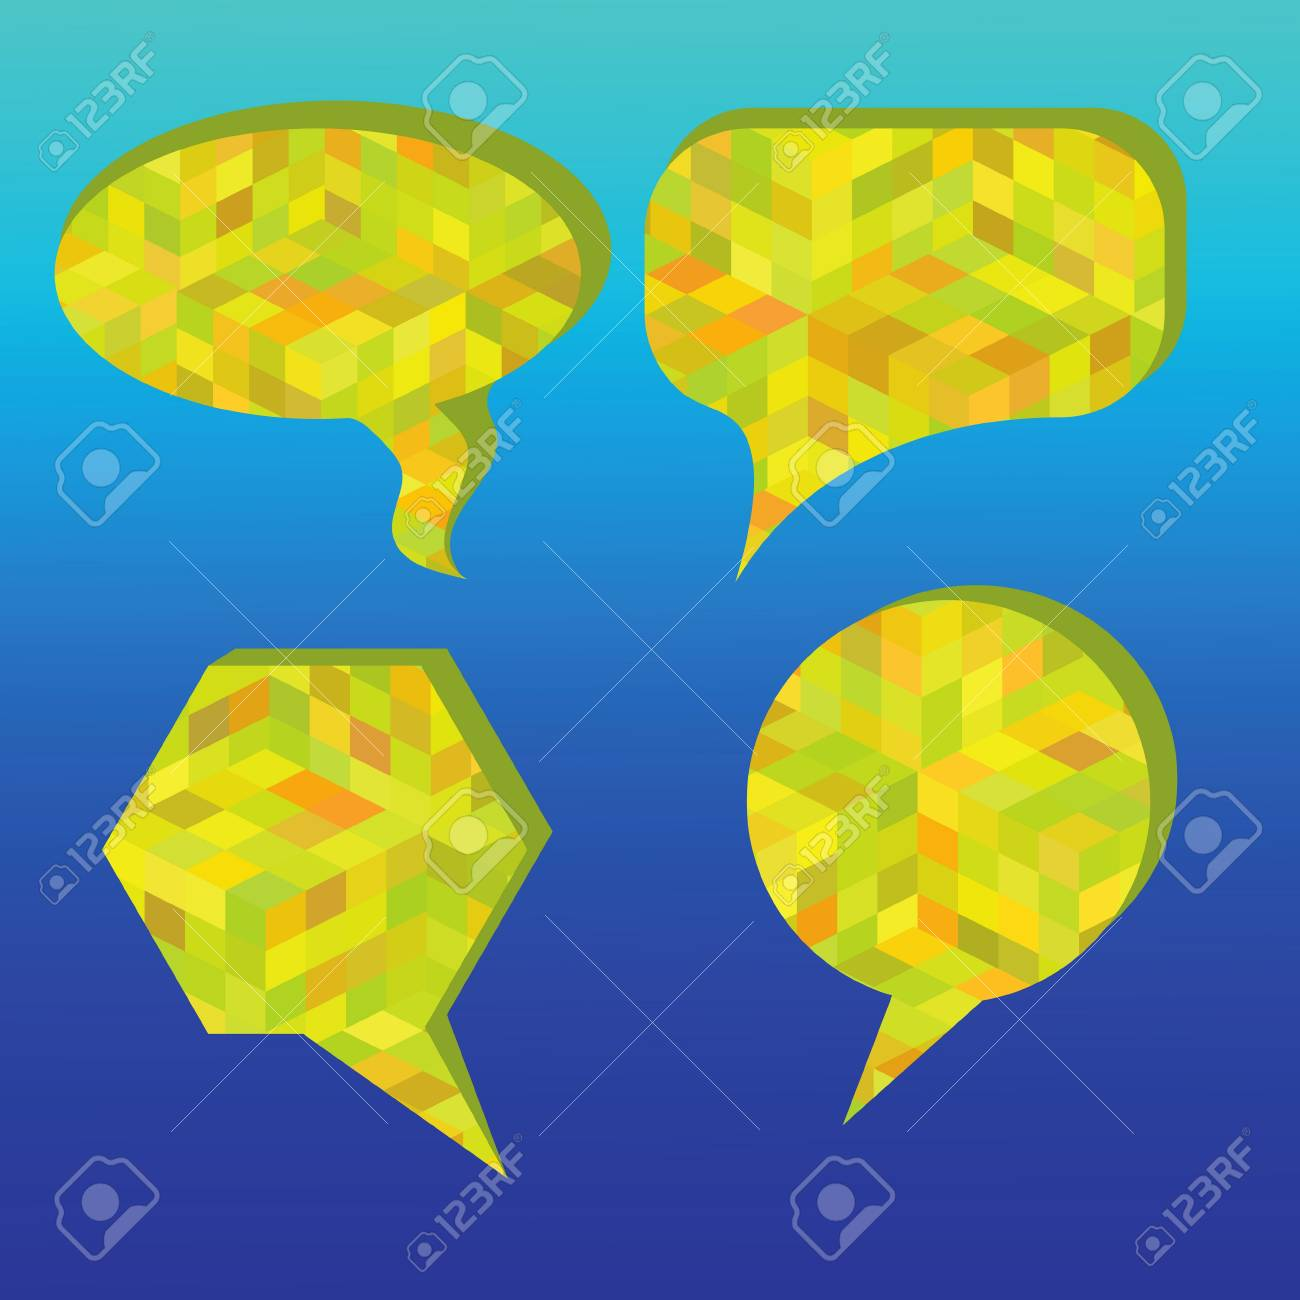 colorful illustration with speech bubbles on a blue background Stock Vector - 28598456